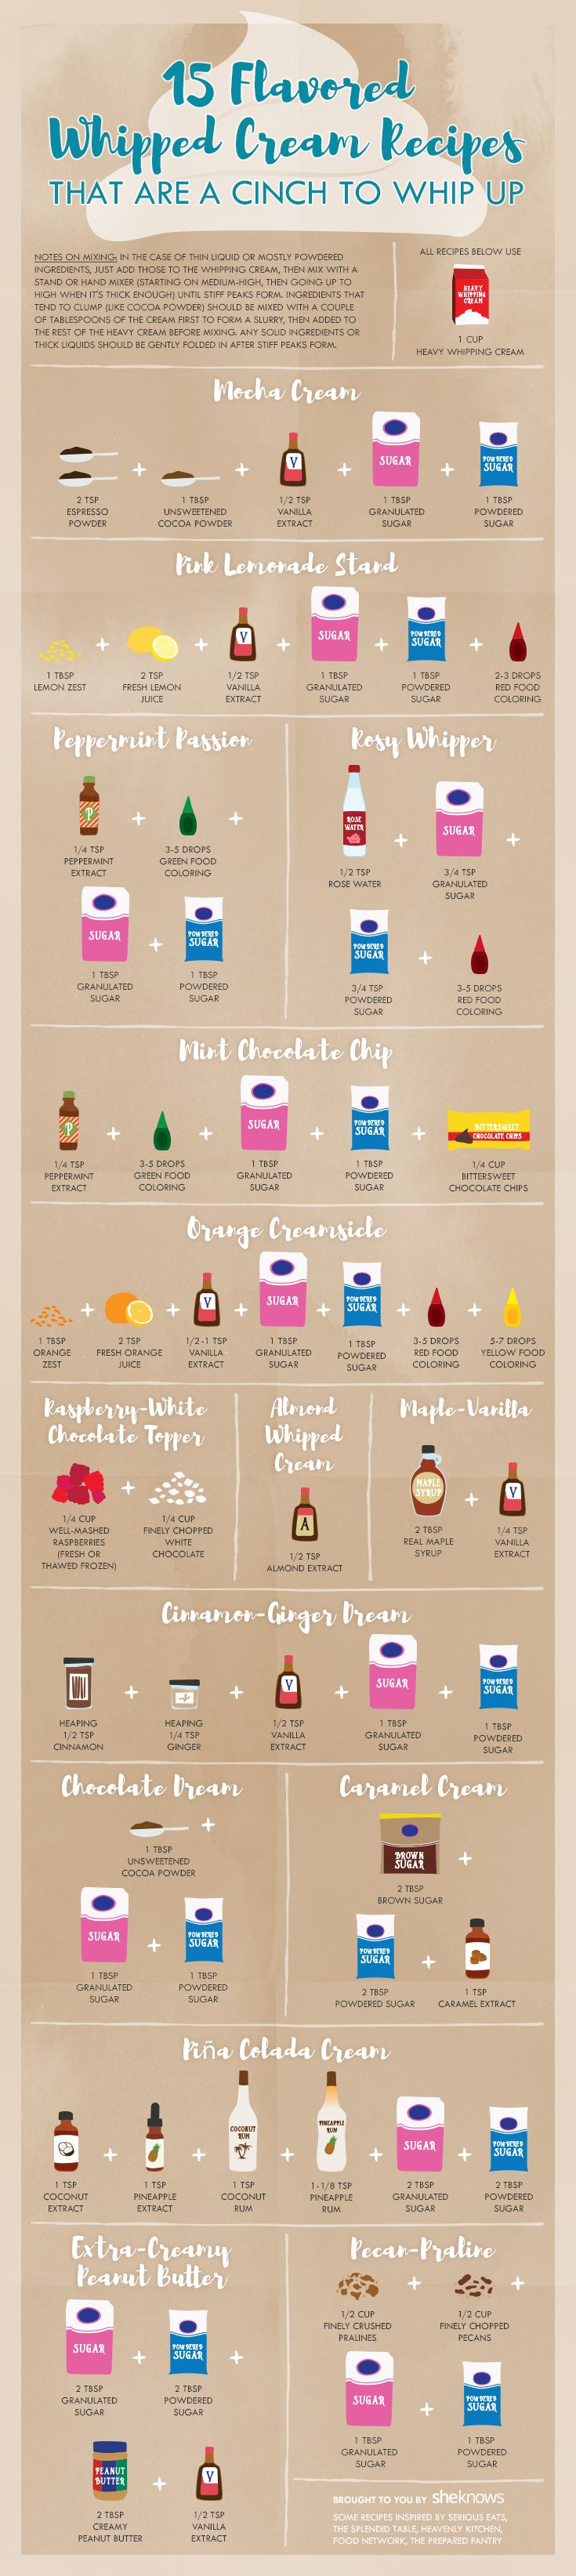 Making flavored whipped cream at home is so simple you'll wonder why you ever used store-bought - Infographic, Illustration                                                                                                                                                                                 More